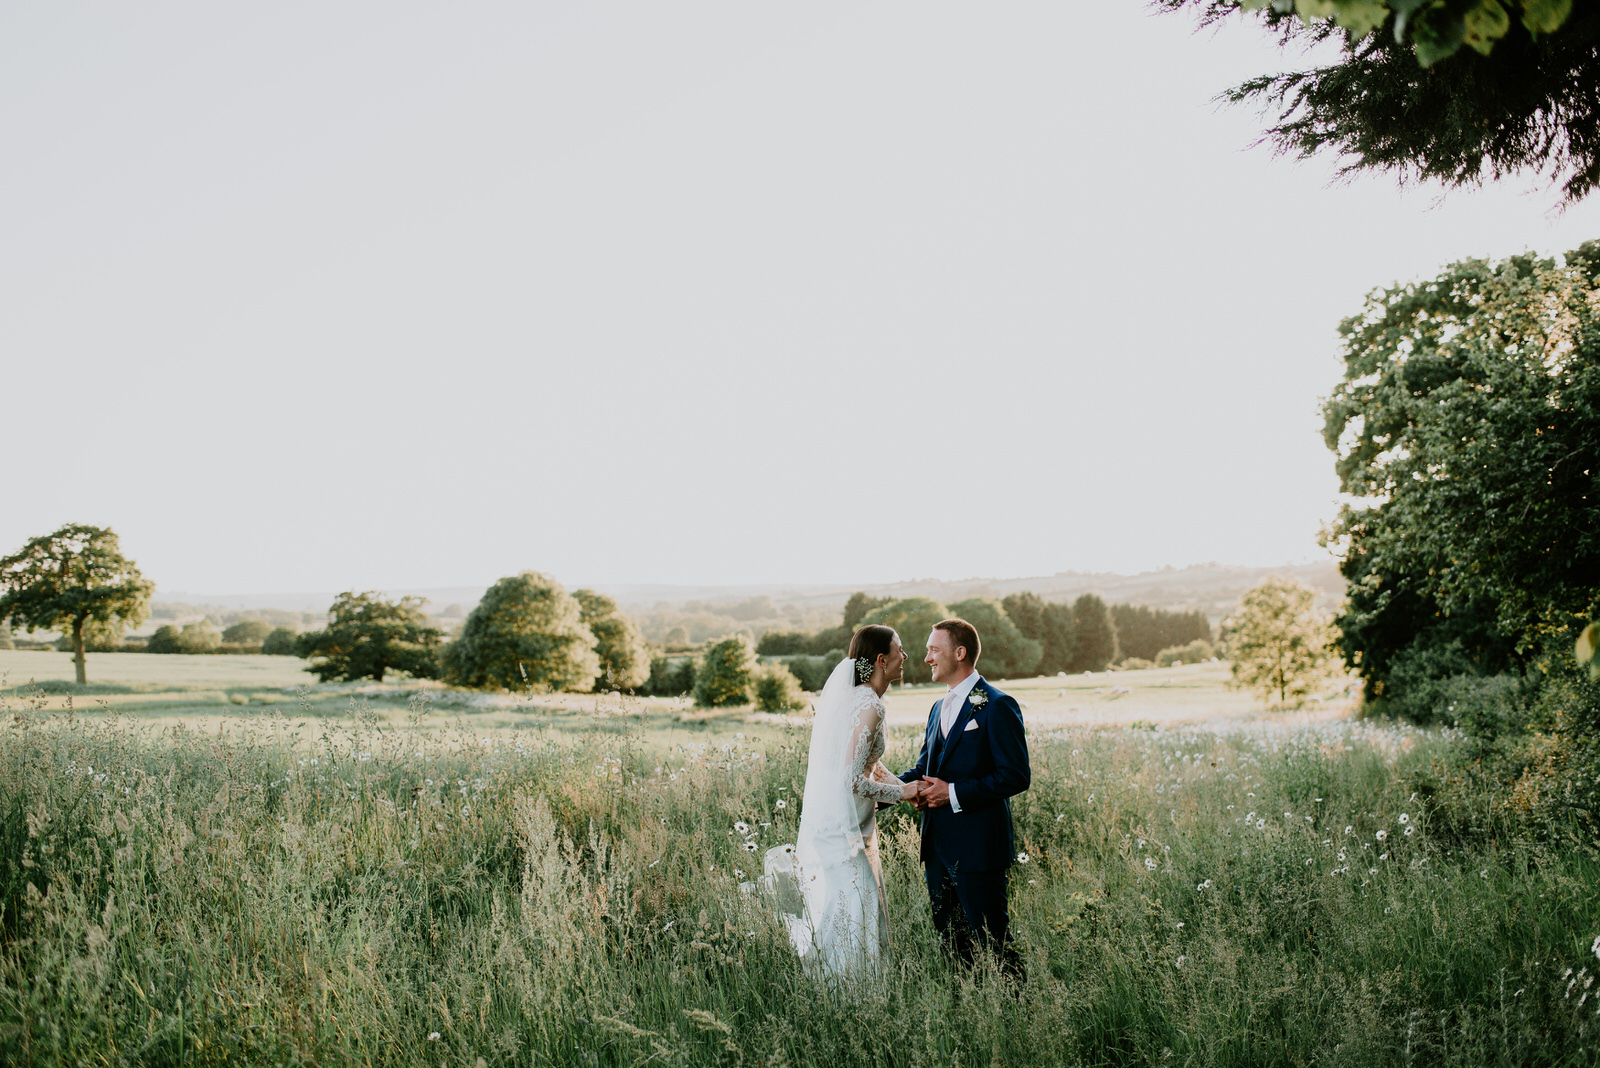 Intimate_Warwickshire_Countryside_Wedding_UK_87.JPG